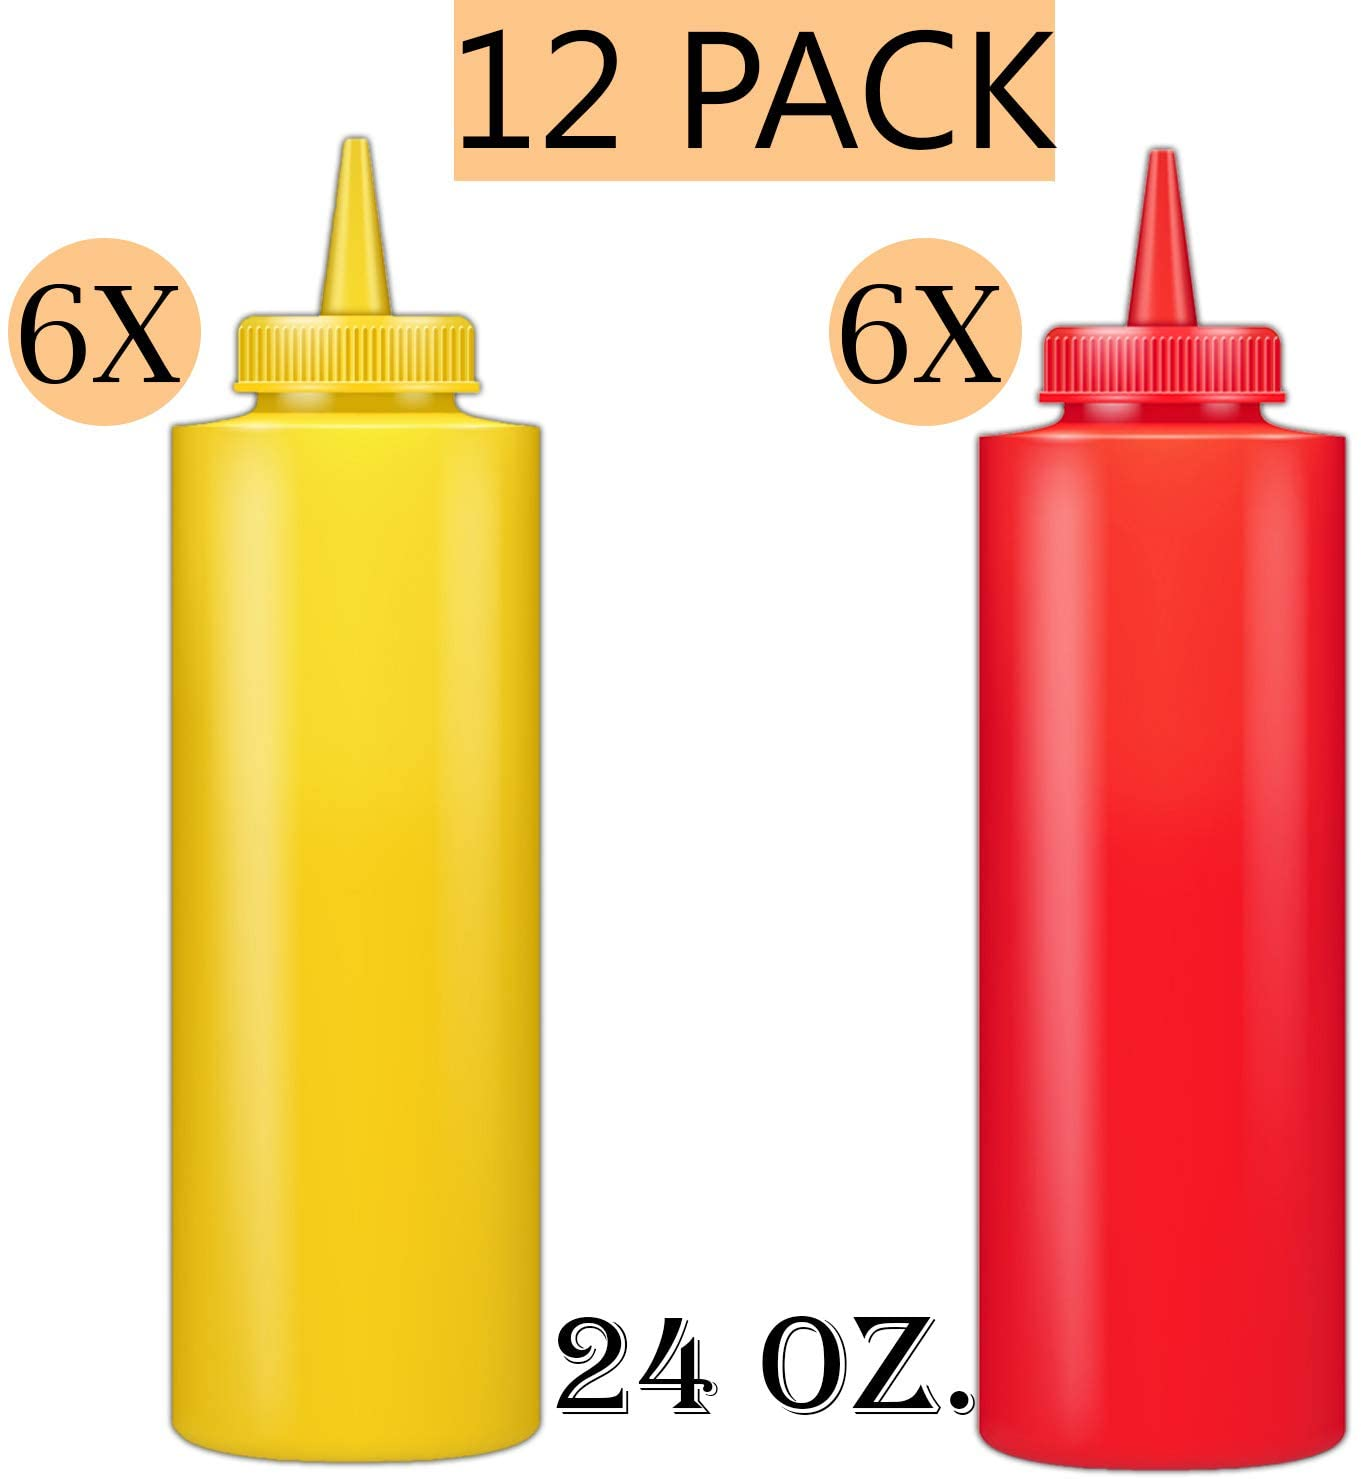 Squeeze Bottle Kit - Includes 24 oz. Squeeze Bottles for Sauces In Red and Yellow 6 of Each Color, Multi use - Sauce Bottles, Squirt Bottles, Condiment Bottle, 12 Pack.